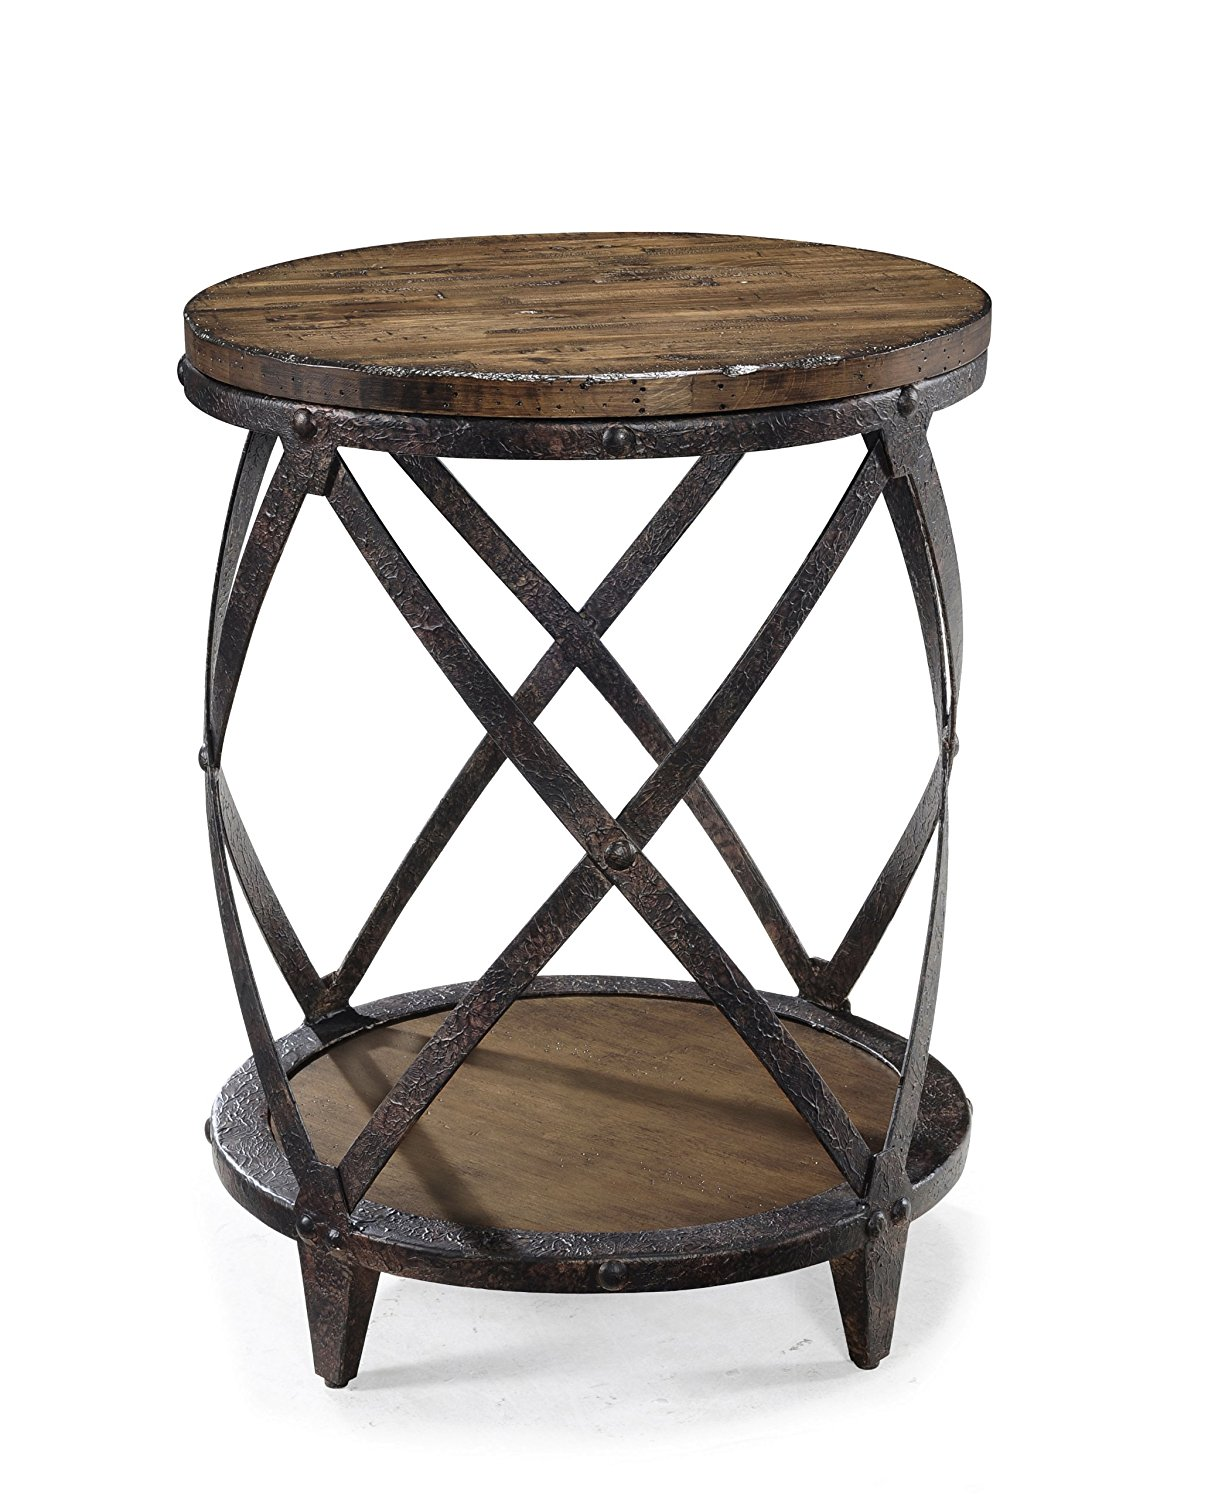 tag archived accent furniture for living room gorgeous colored nero white tables table small outdoor whitewashed corner round off top eryn antique pedestal distressed marble metal